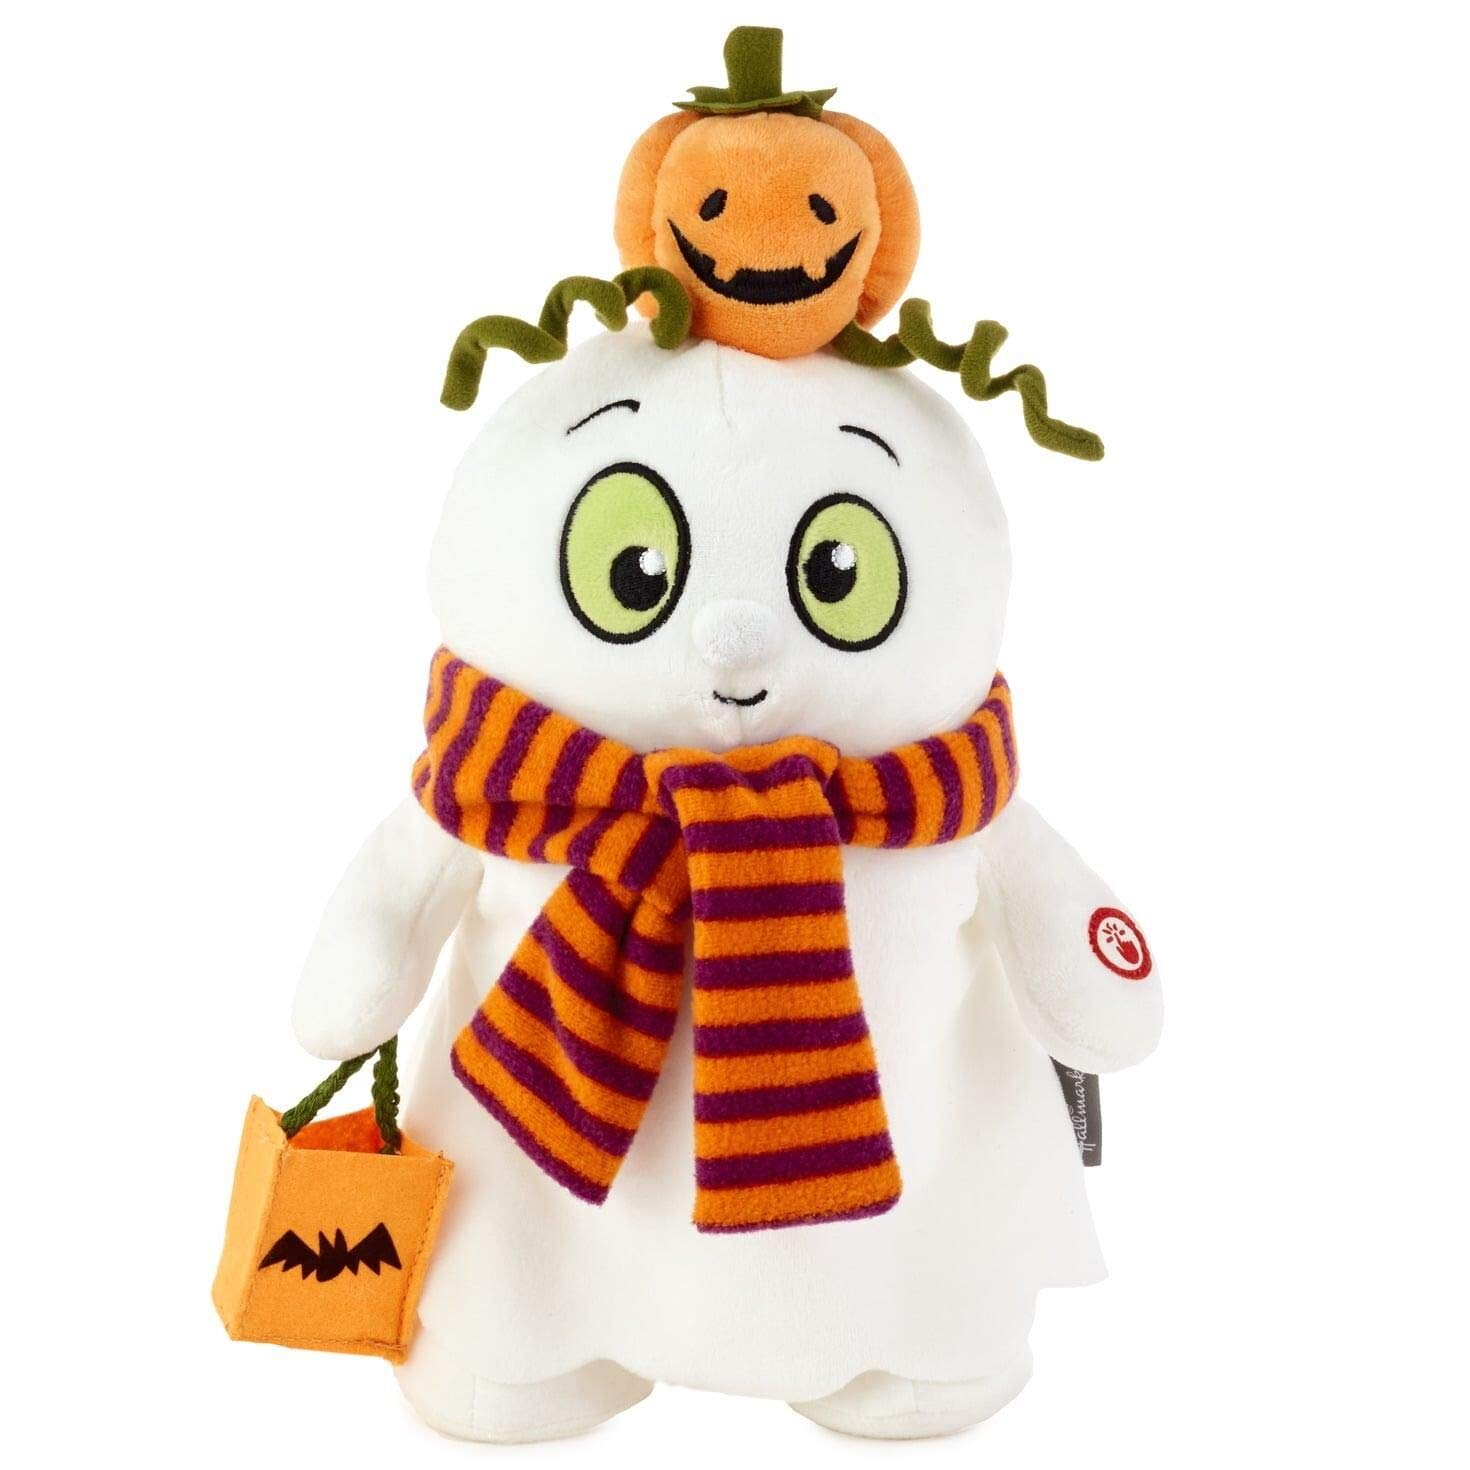 HMK Musical Trick 'n' Treat Ghost Stuffed Animal with Motion by Hallmark